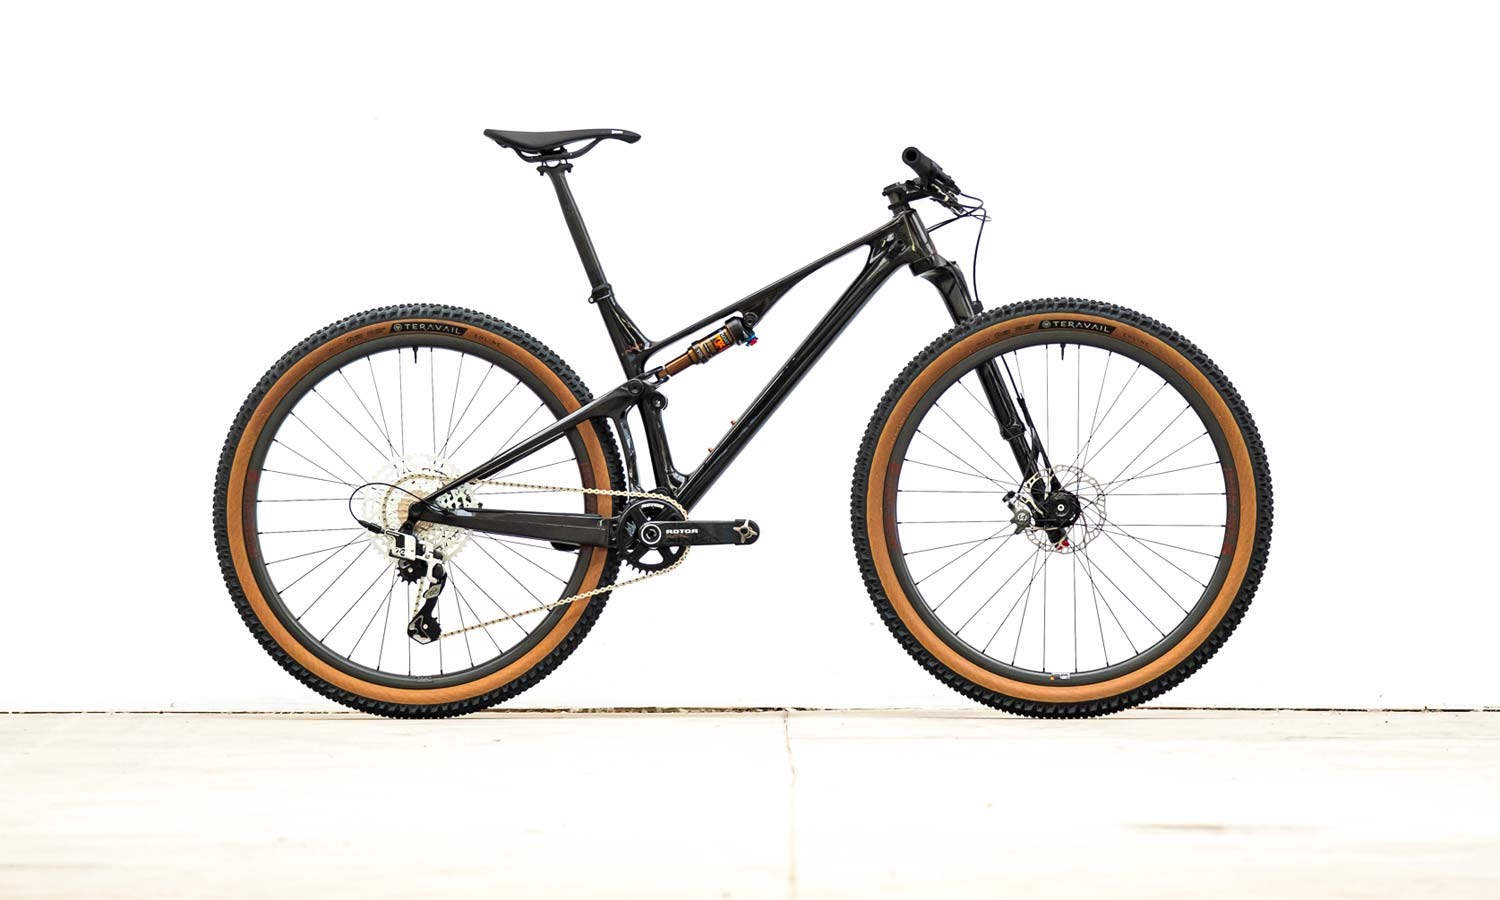 Unno Horn 100mm light carbon XC mountain bike by Light Wolf